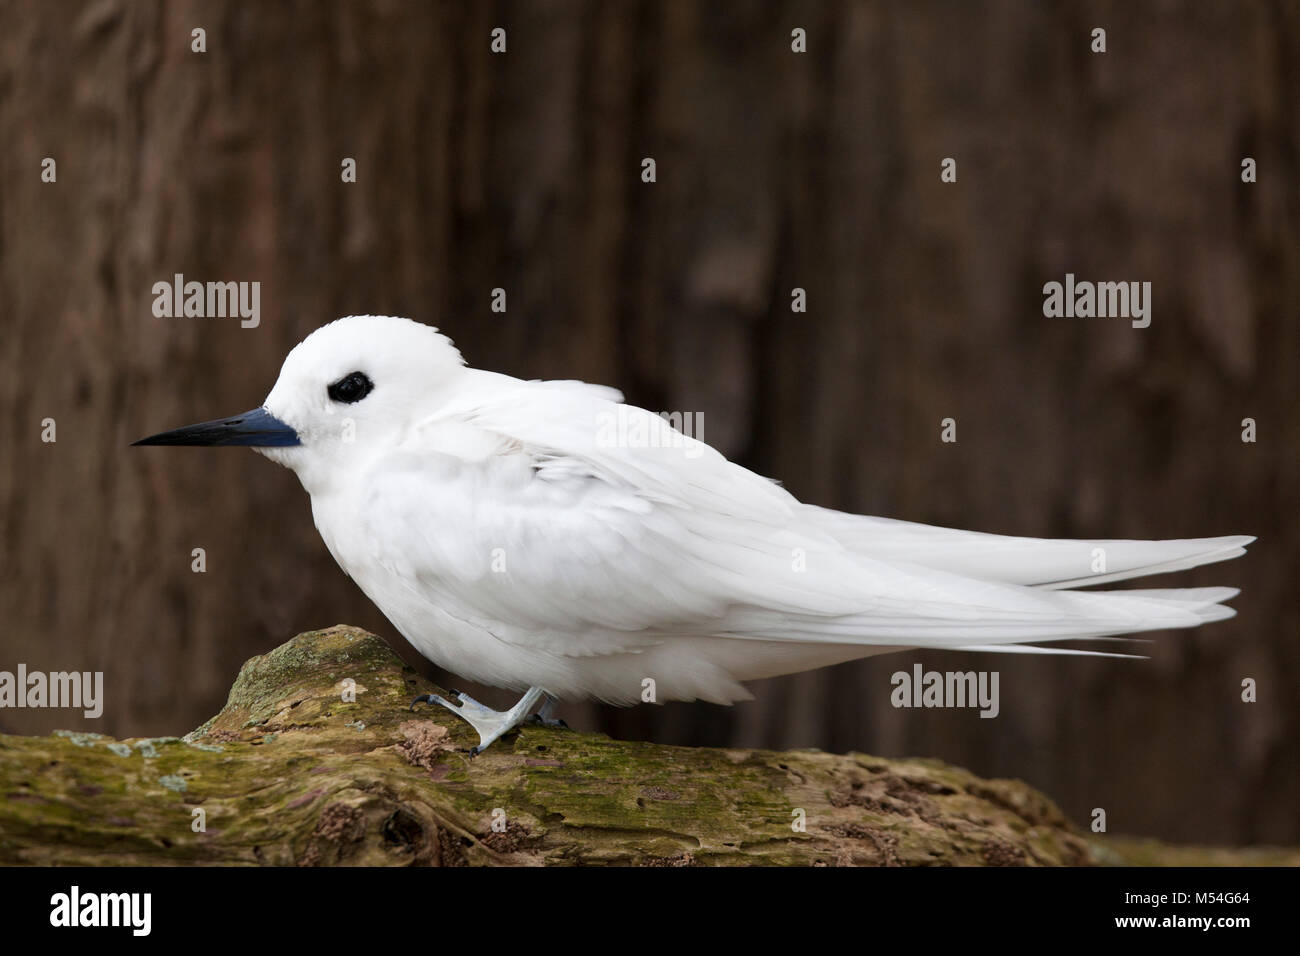 White Tern (Gygis alba rothschildi) perched on branch in forest - Stock Image